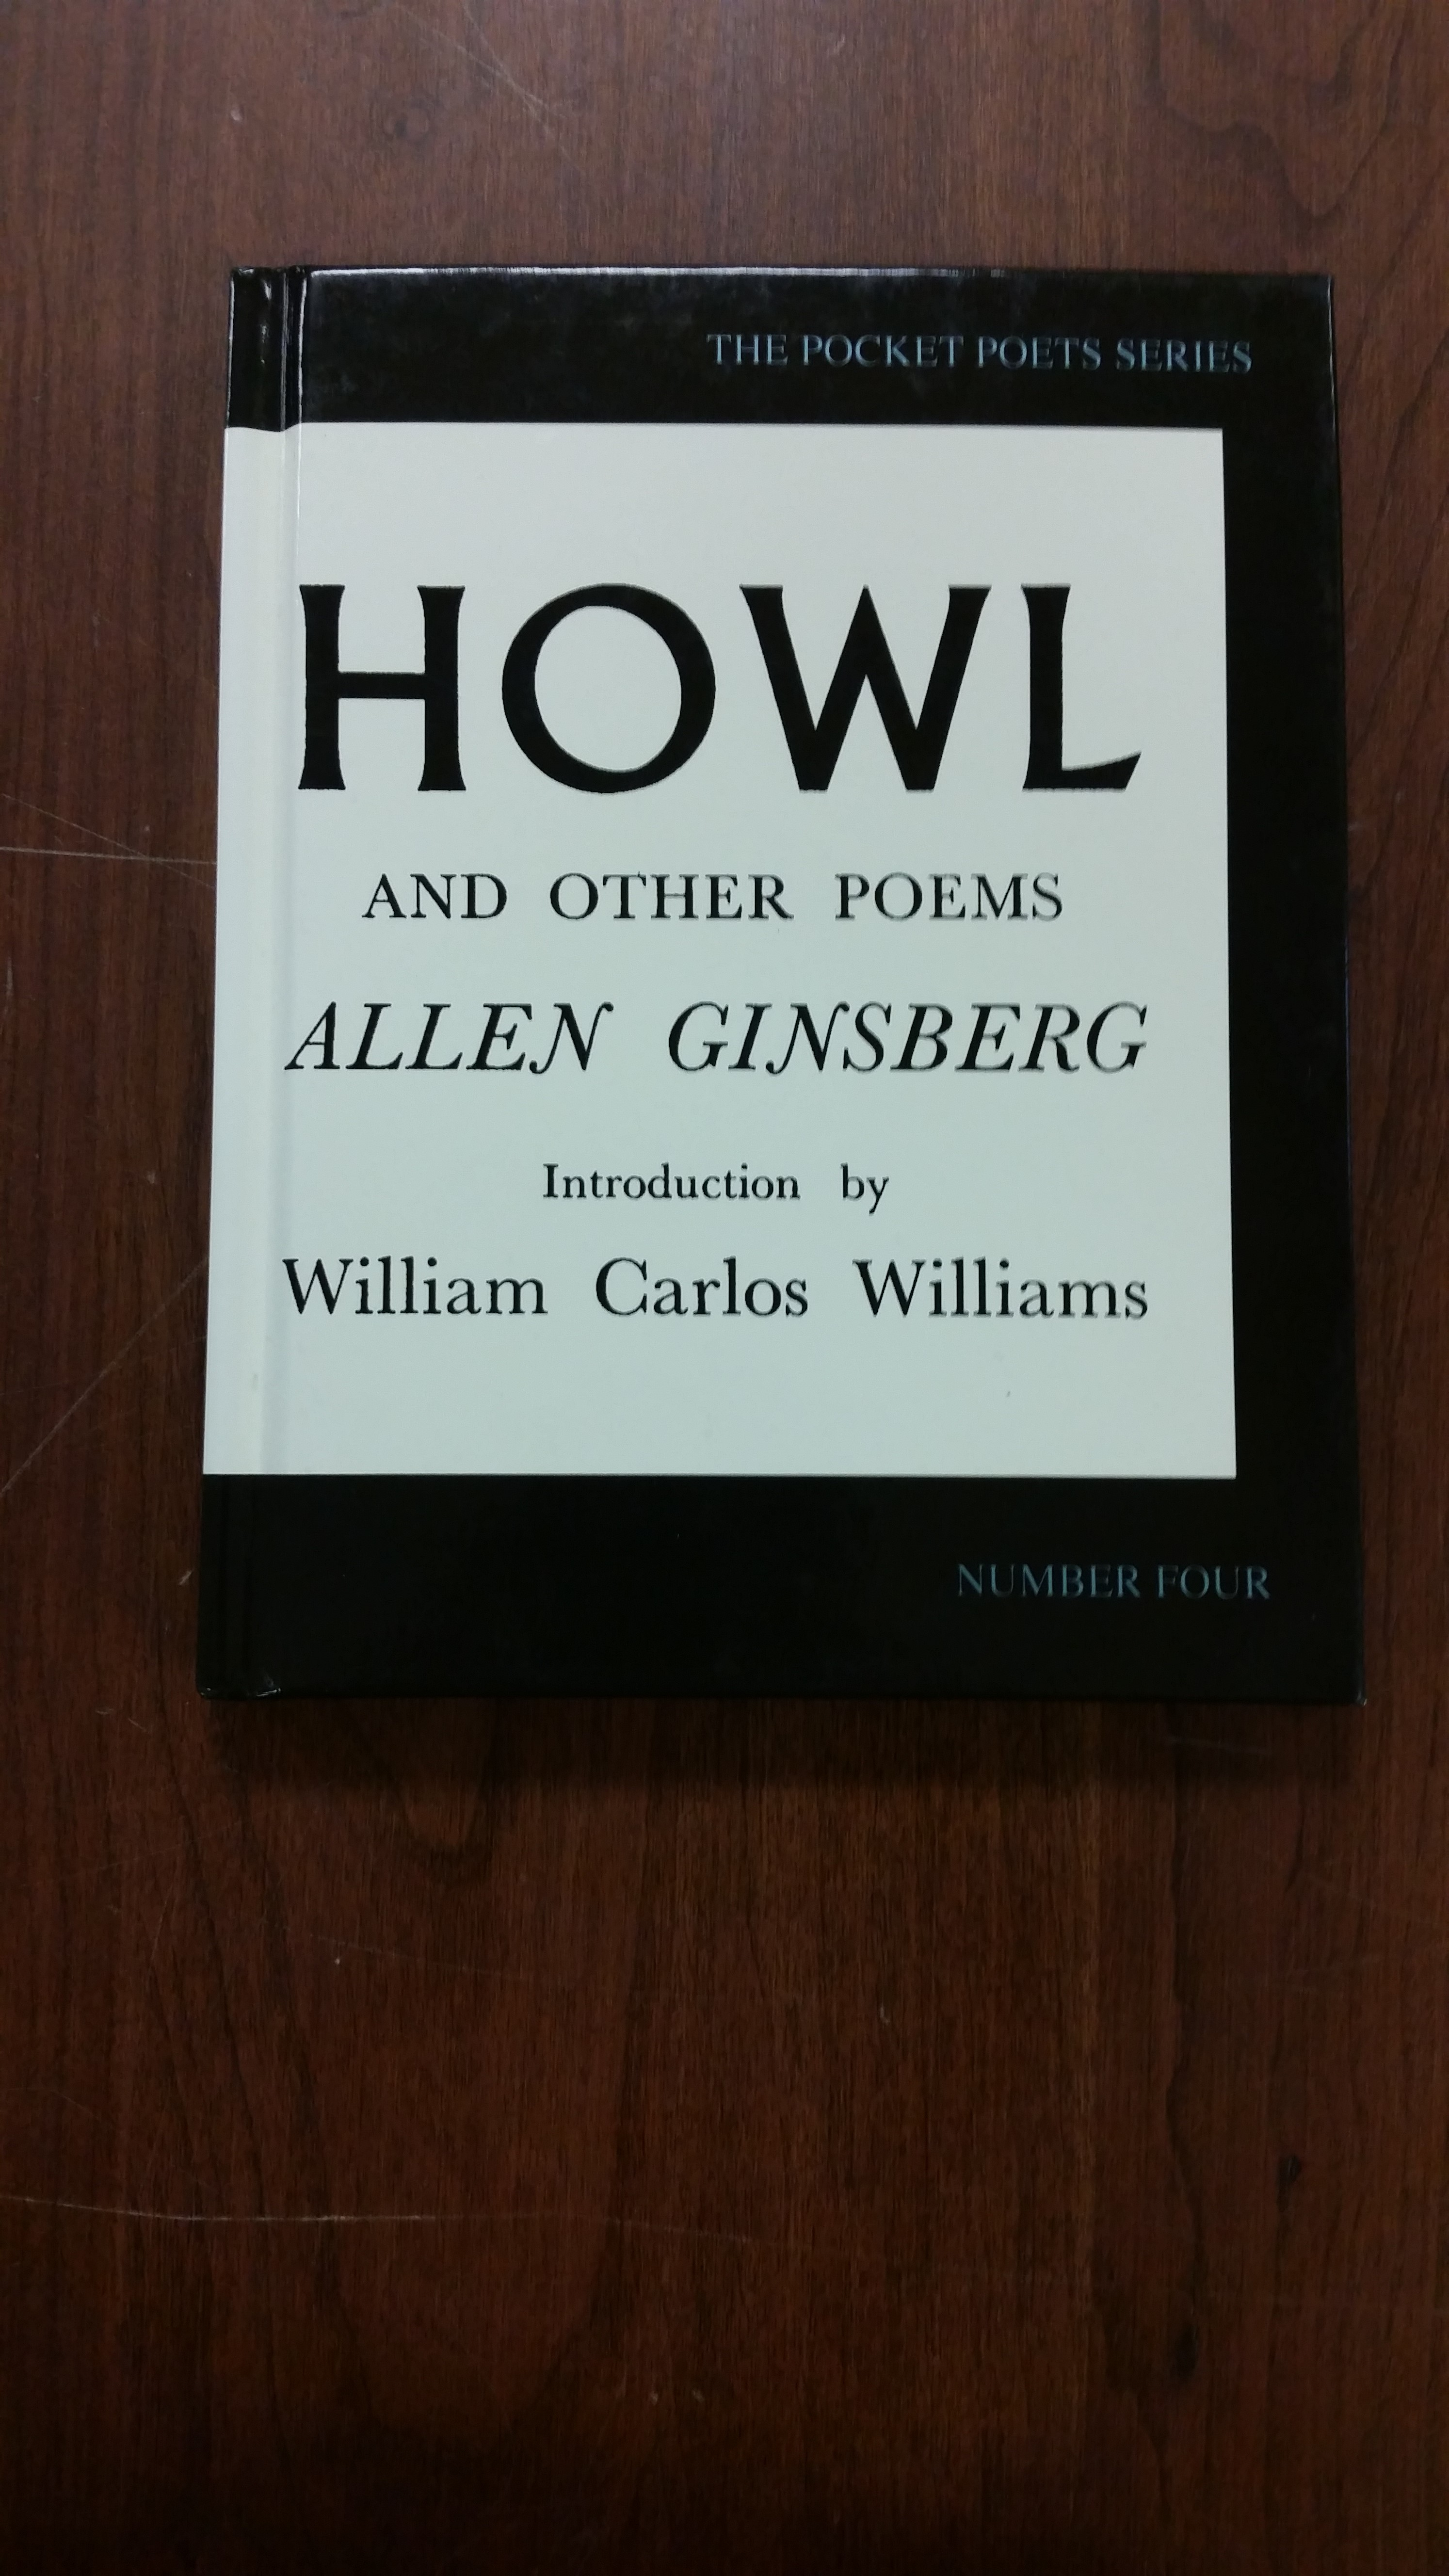 the depiction of sexuality and social injustice in howl a poem by allen ginsberg The depiction of sexuality and social injustice in howl, a poem by allen ginsberg.